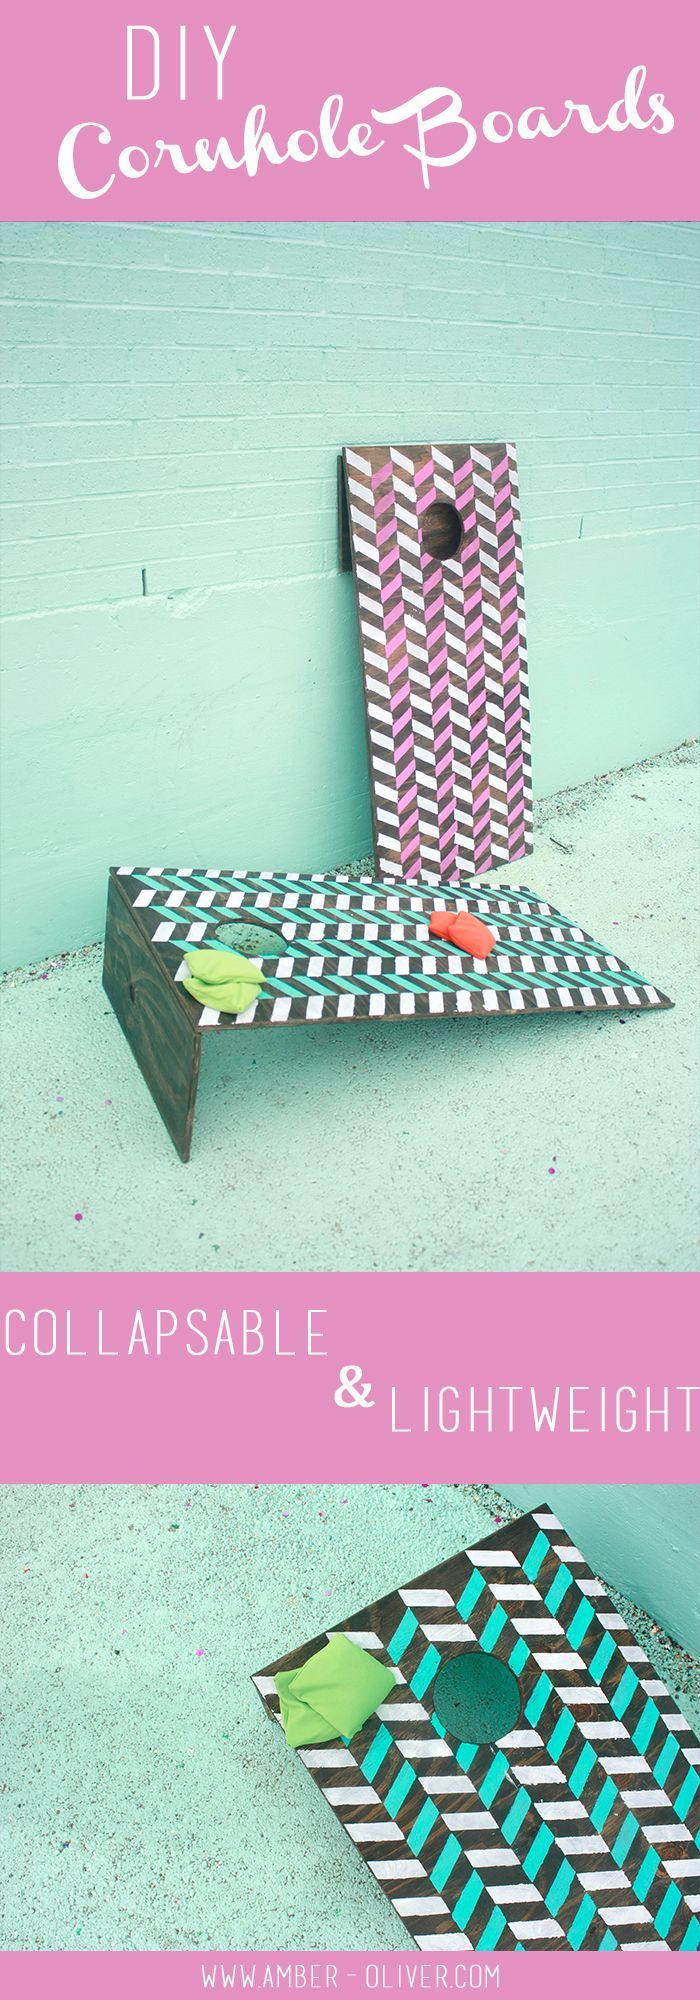 DIY Cornhole boards that are collapsible and lightweight! // http://Amber-Oliver.com